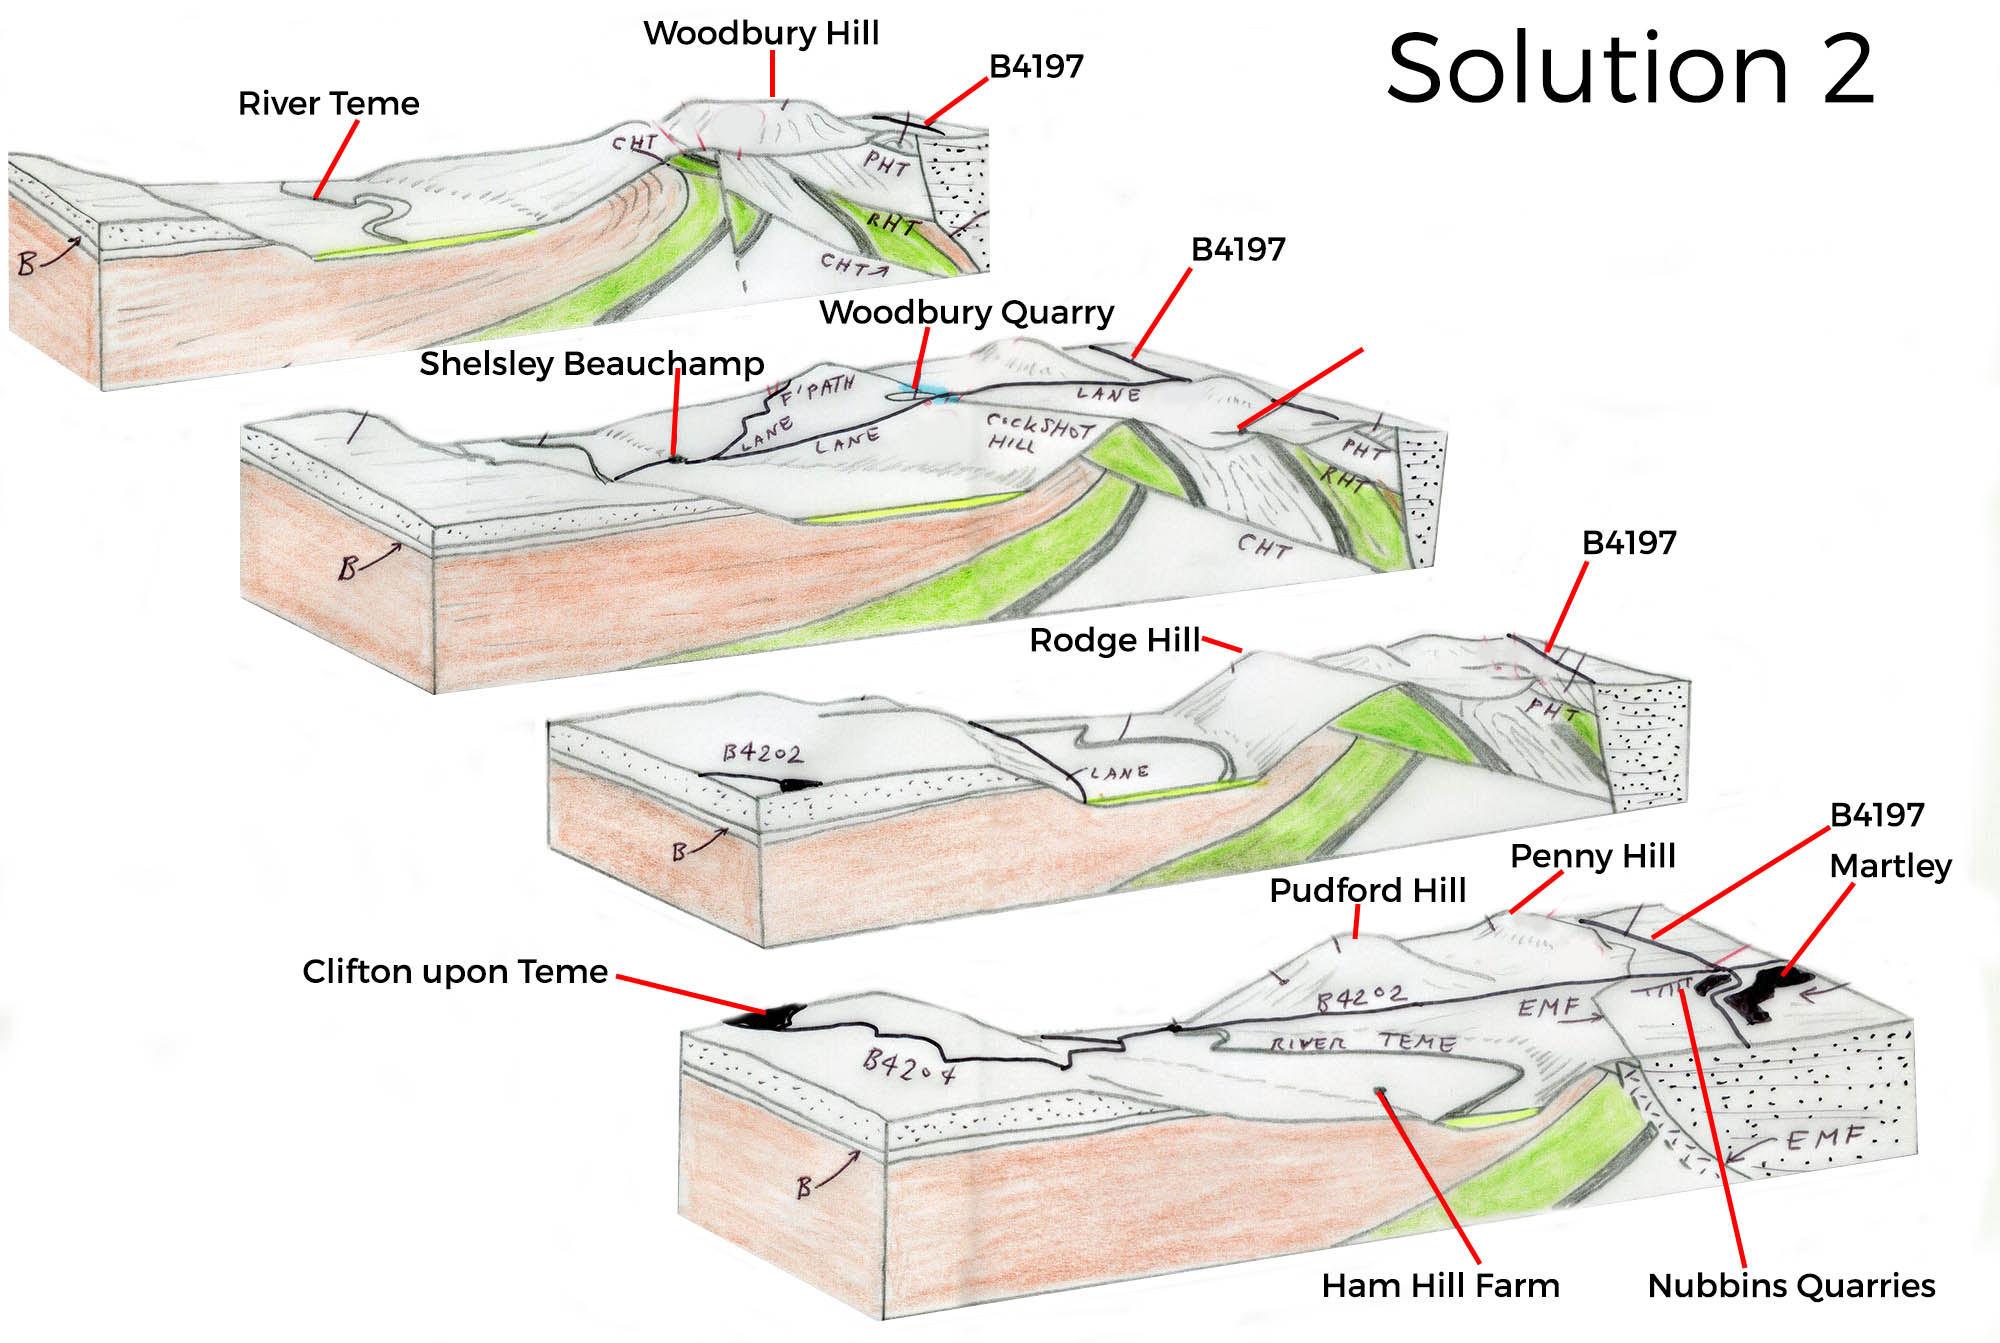 Martley geological section - solution 2